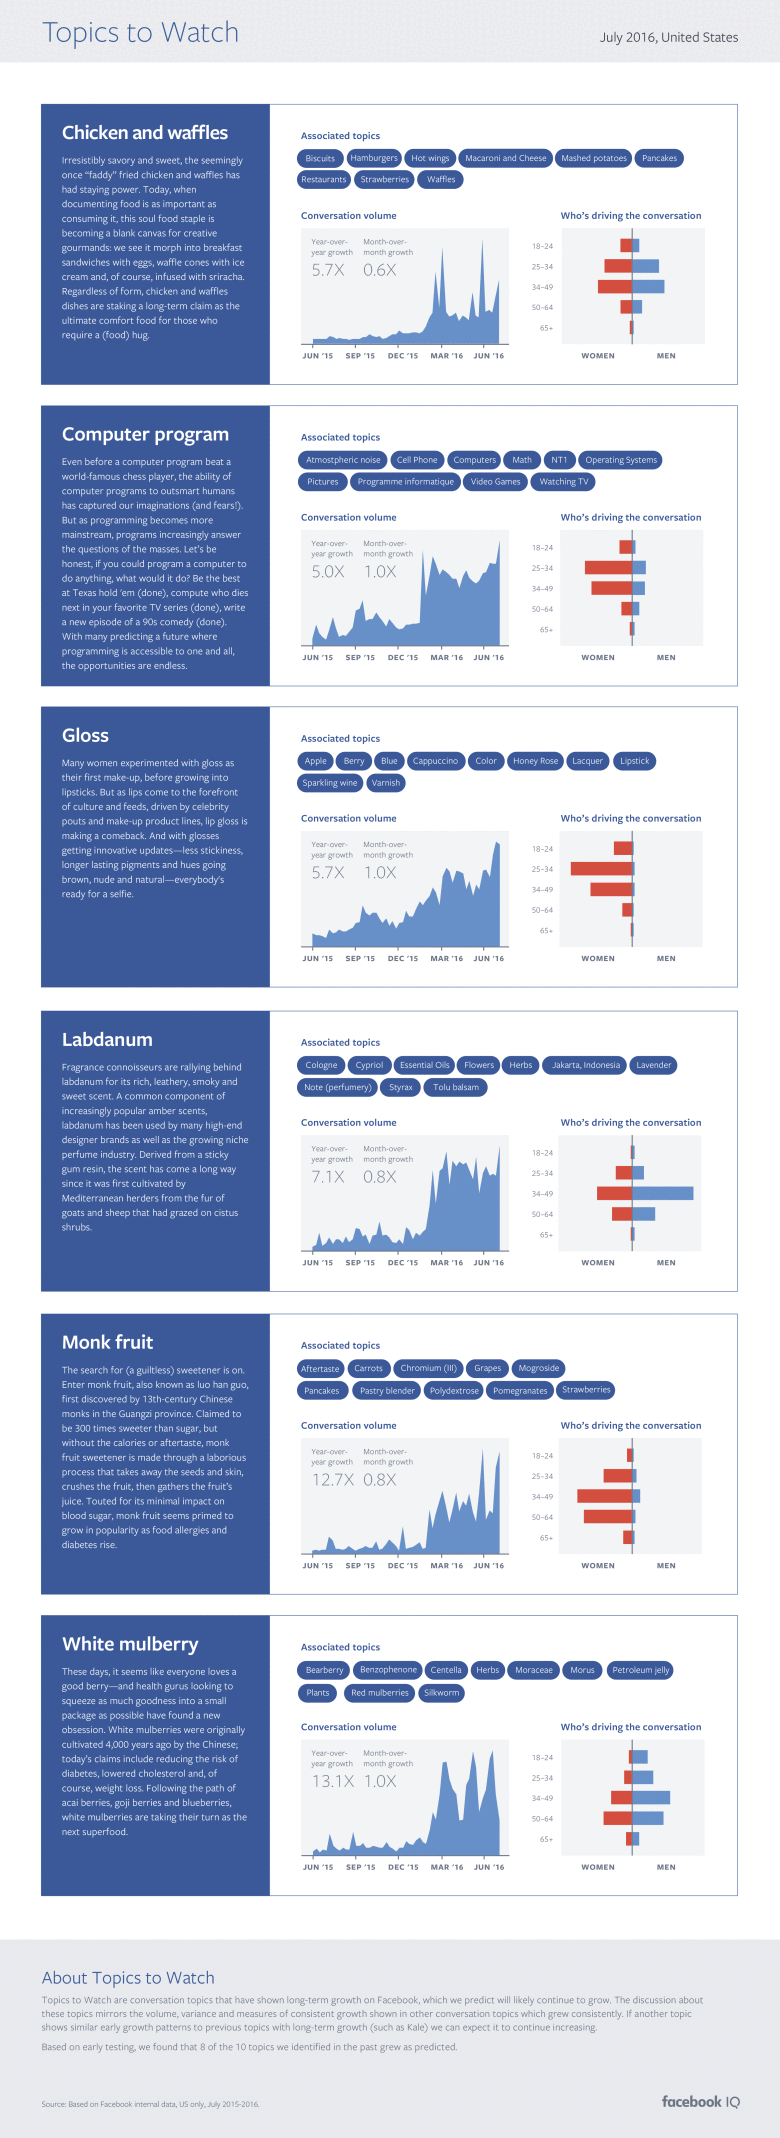 Facebook Highlights Trending Topics in New Report [Infographic] | Social Media Today